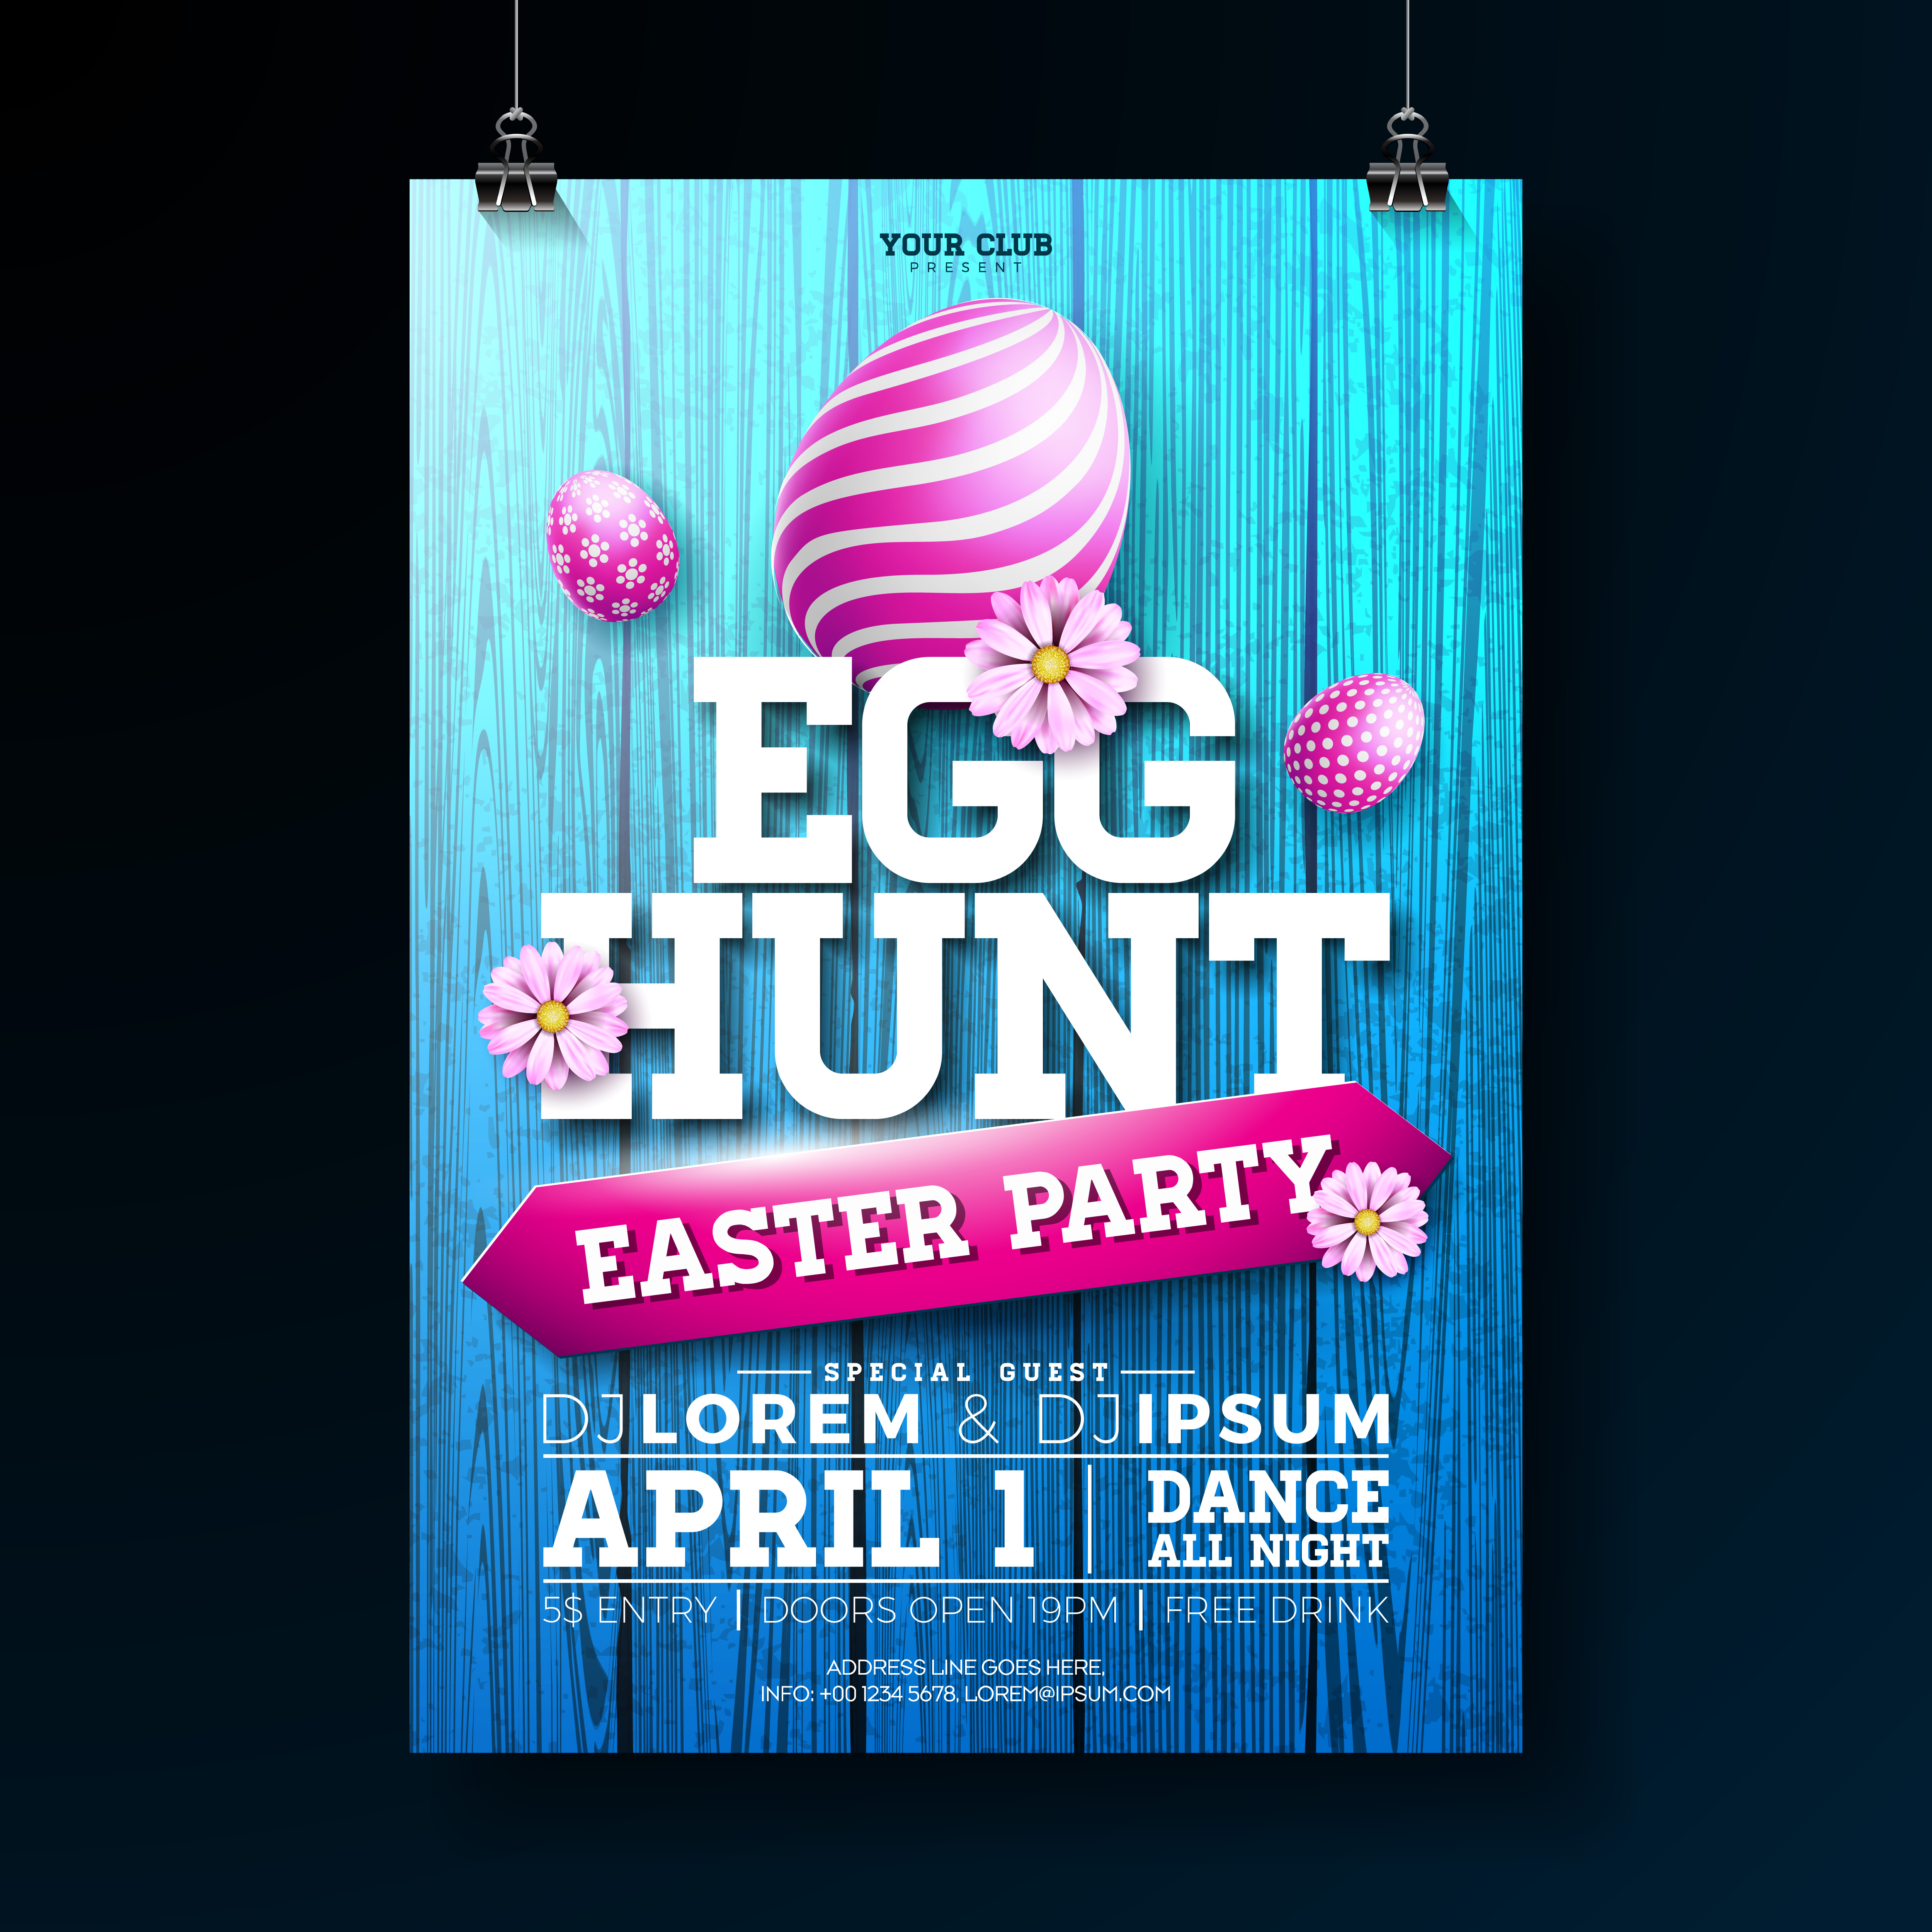 vector egg hunt easter party flyer illustration with painted eggs  flowers and typography